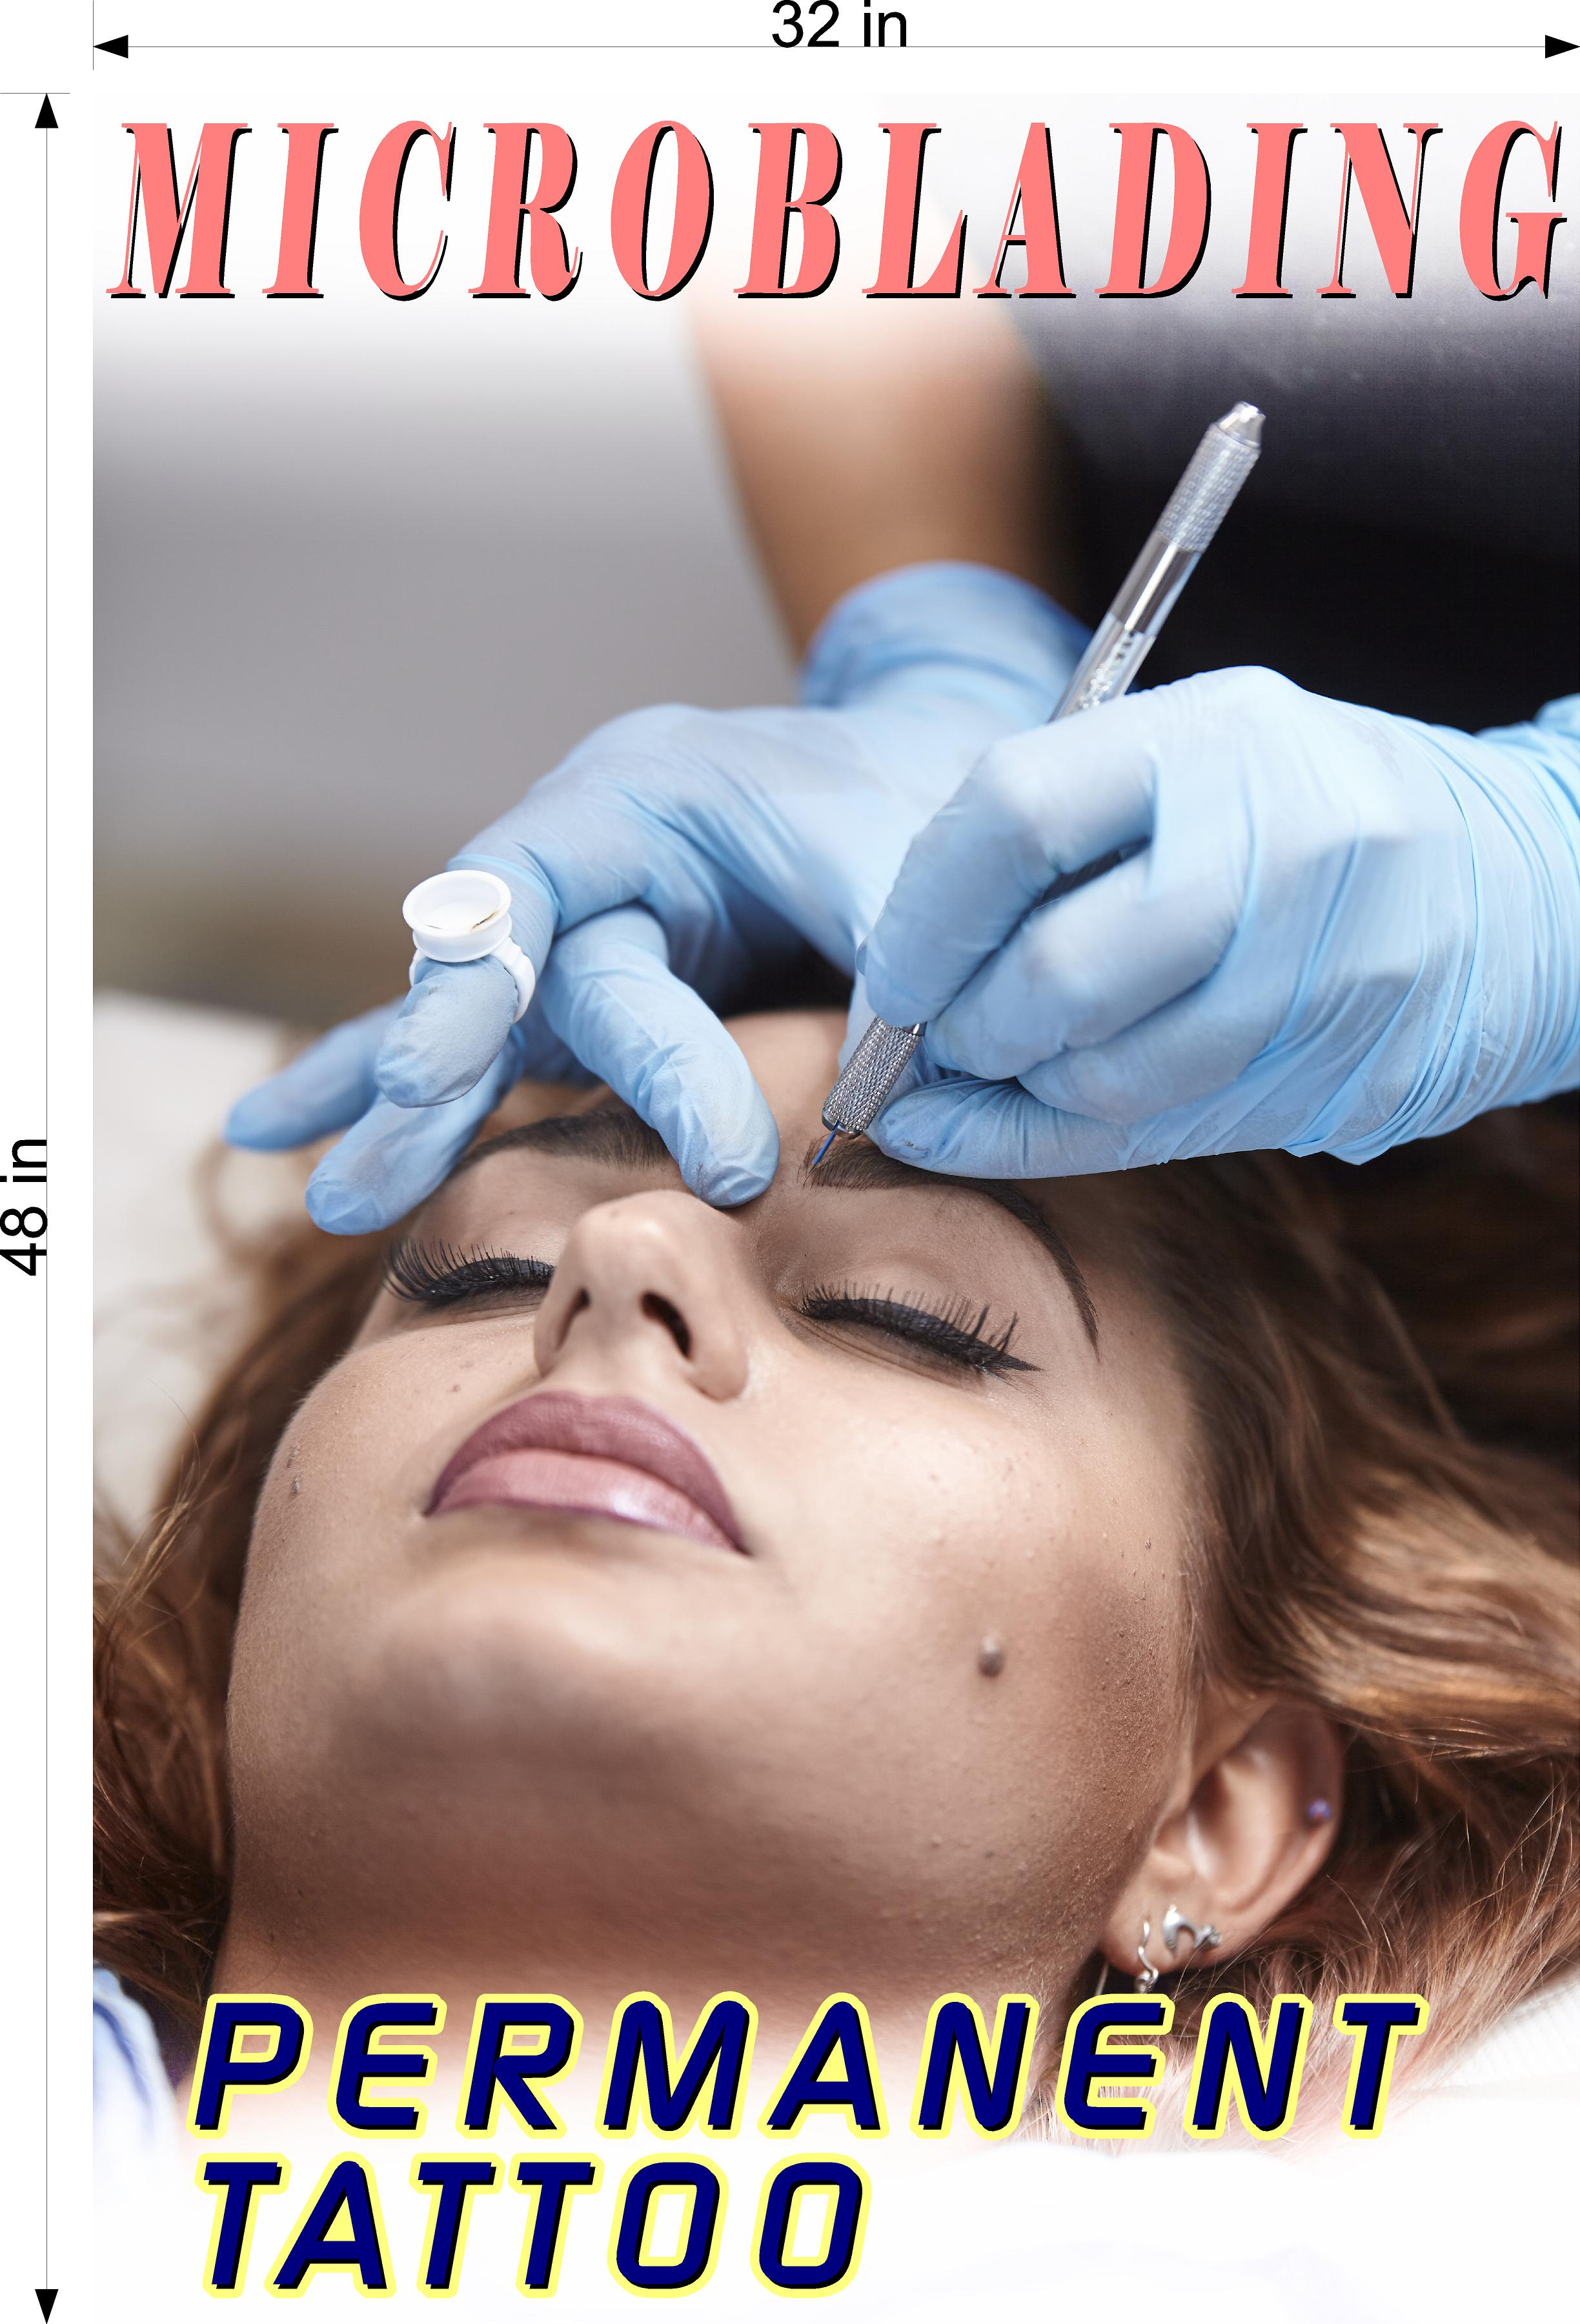 Microblading 06 Photo-Realistic Paper Poster Matte Non-Laminated Permanent Tattoo Vertical